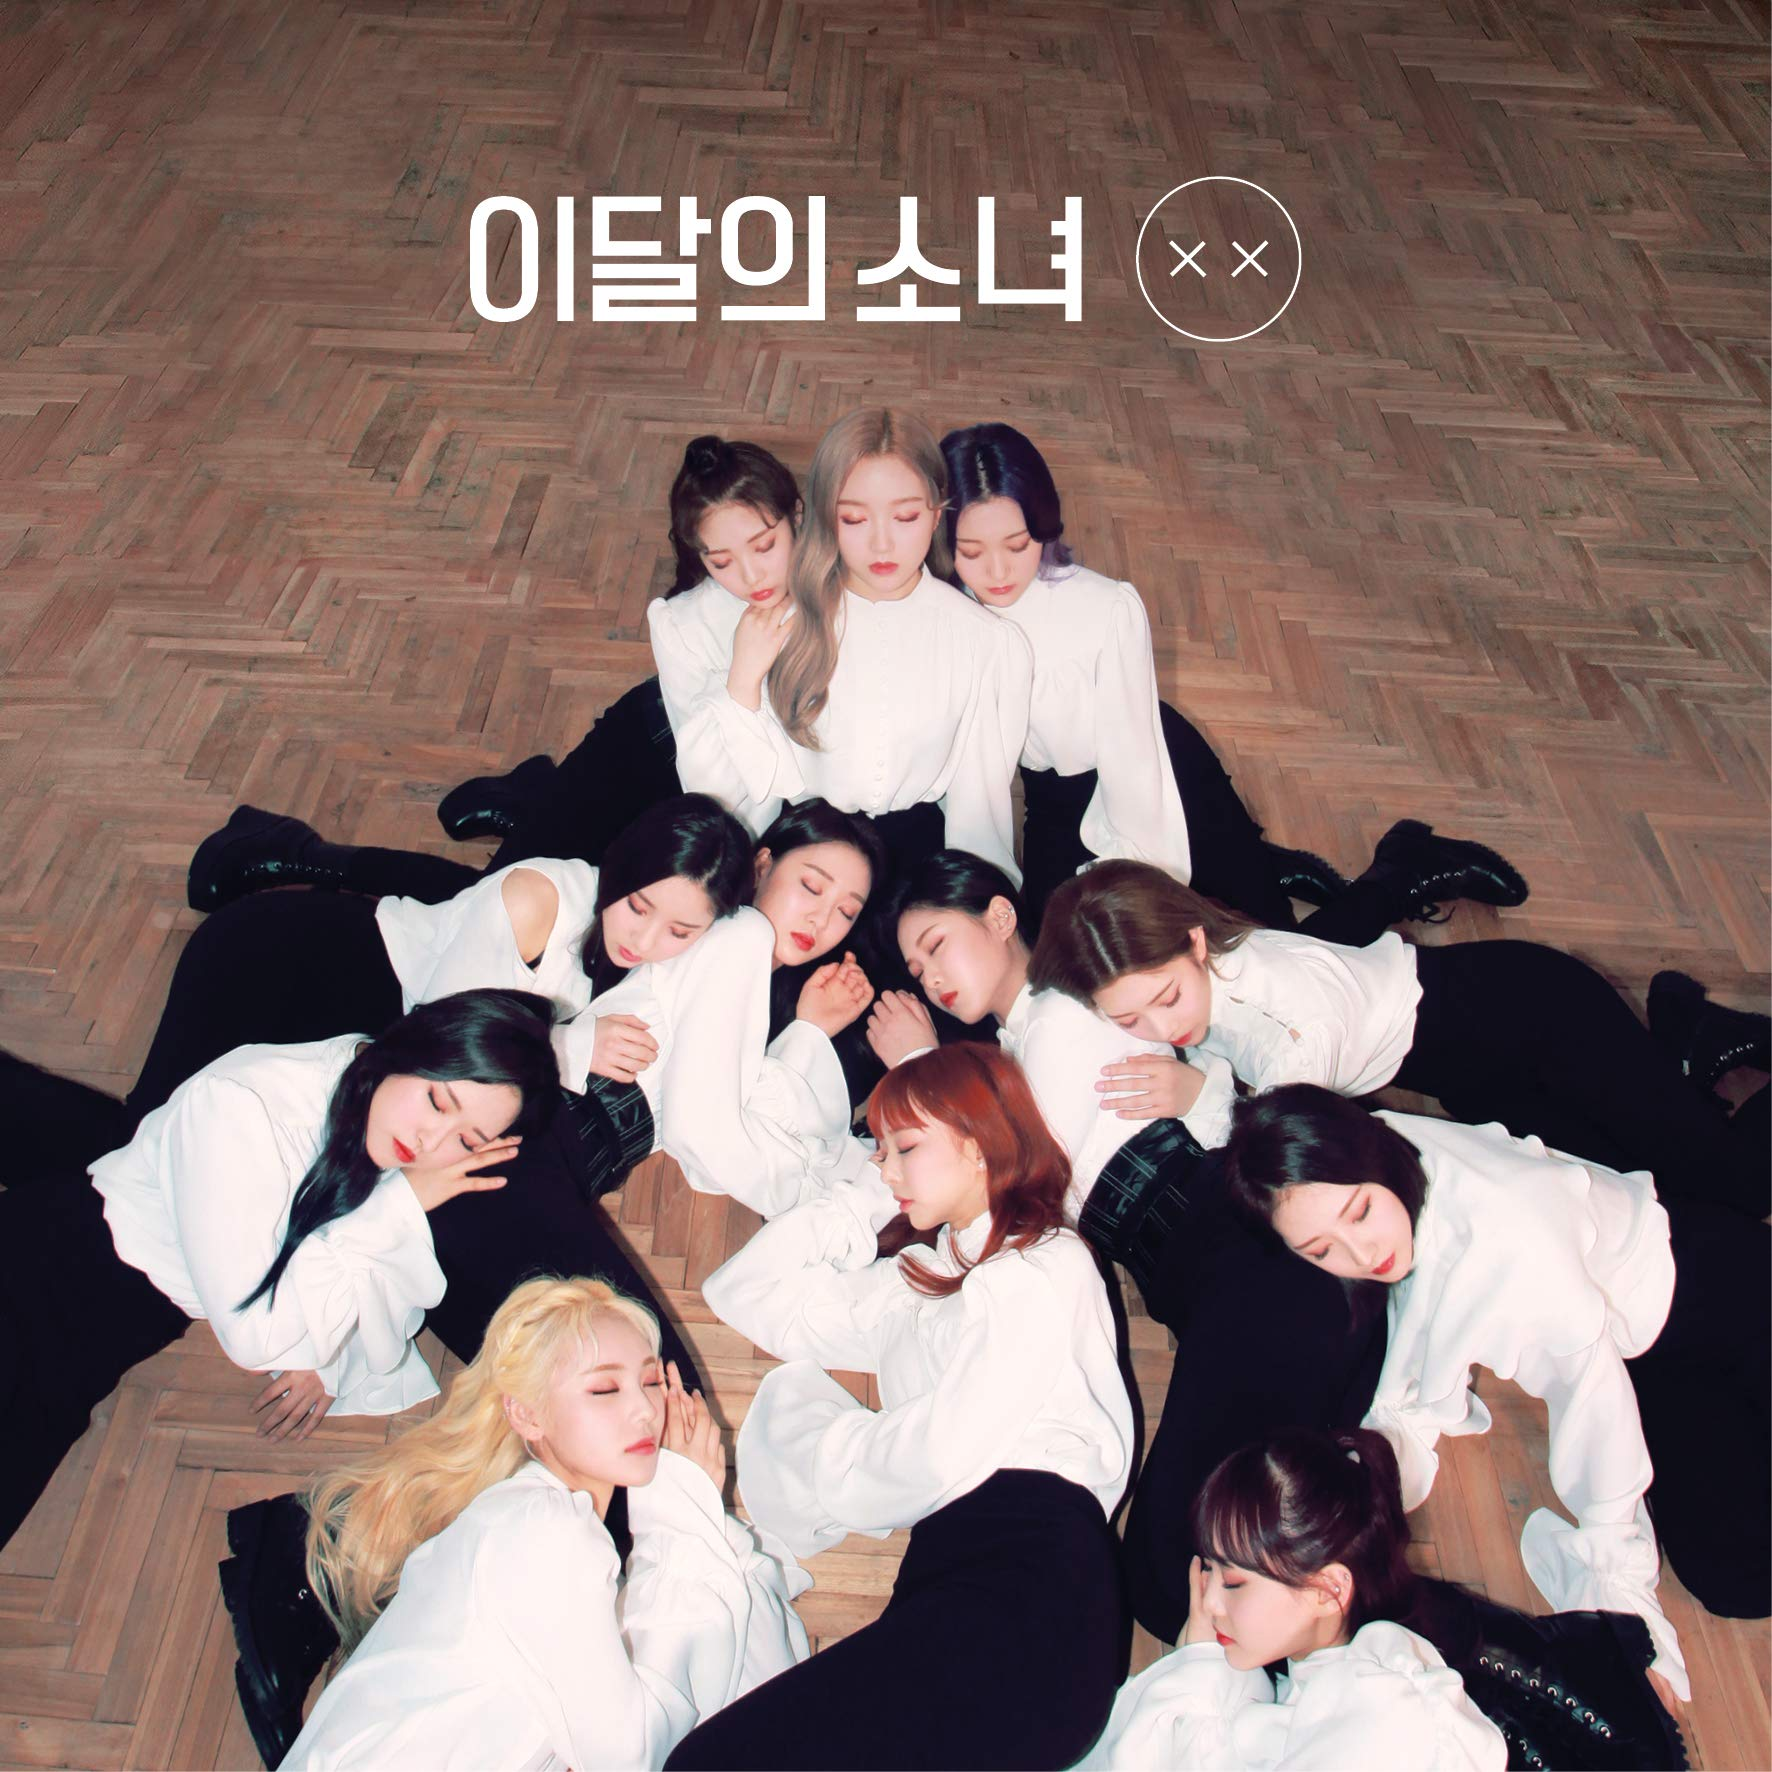 Monthly Girl LOONA - X X (Debut Mini Repackage) [Limited B ver.] CD+Booklet+1Photocard+Folded Poster+Double Side Extra Photocards Set